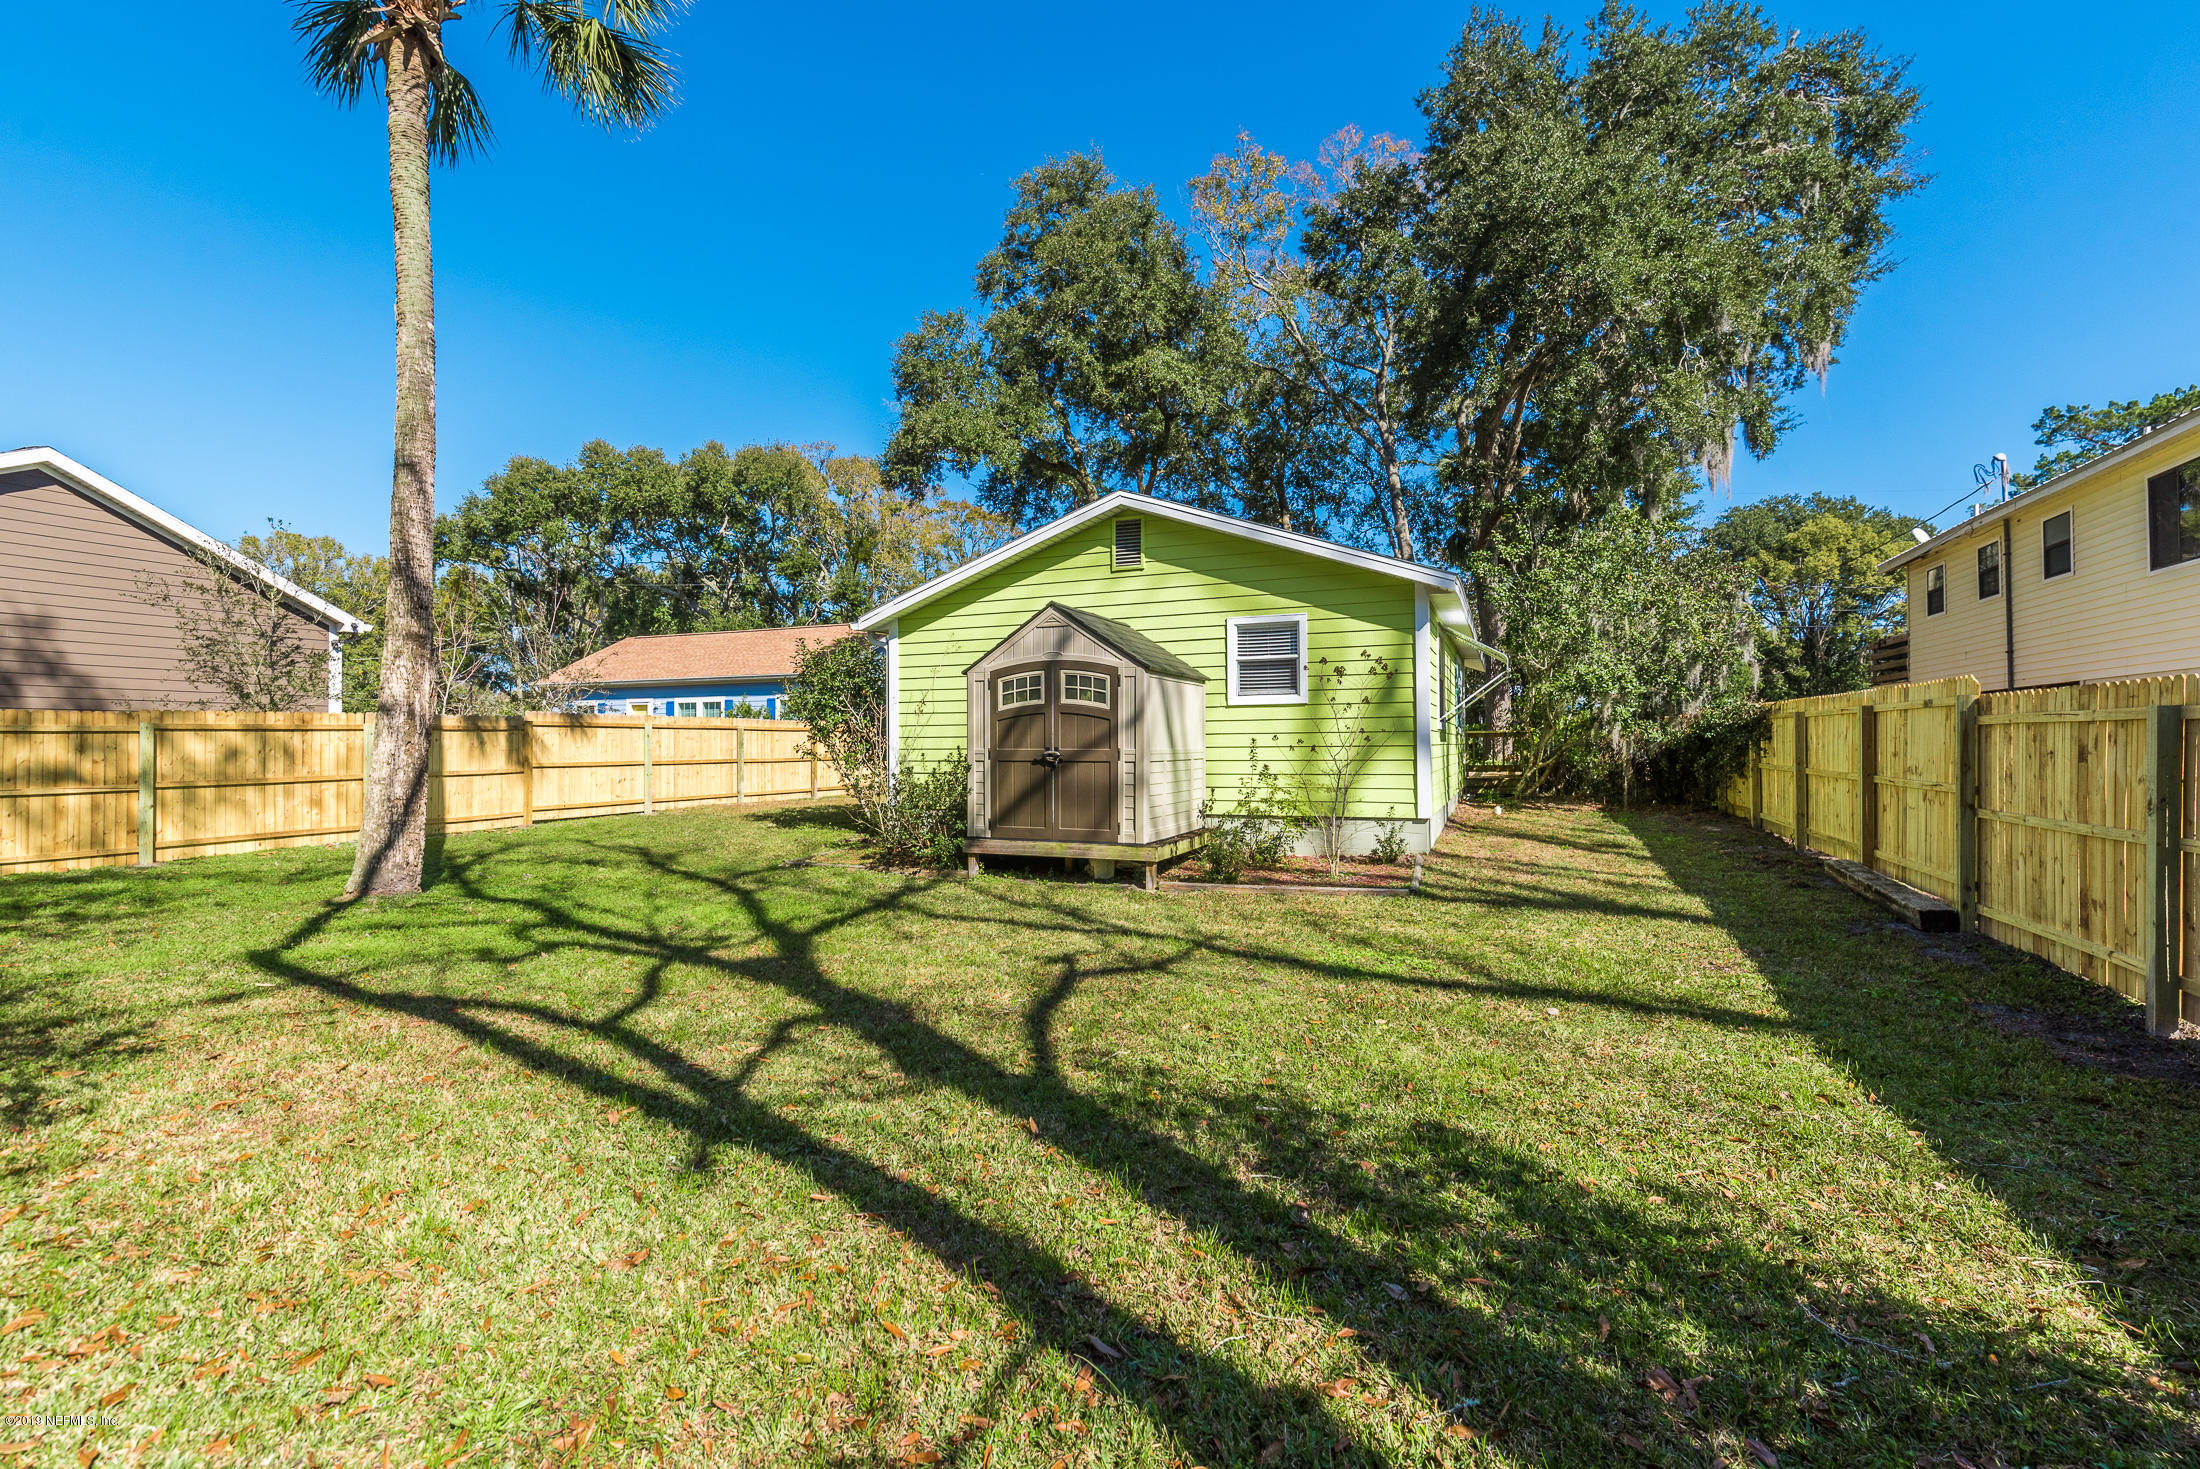 8 NESMITH AVE ST AUGUSTINE - 37